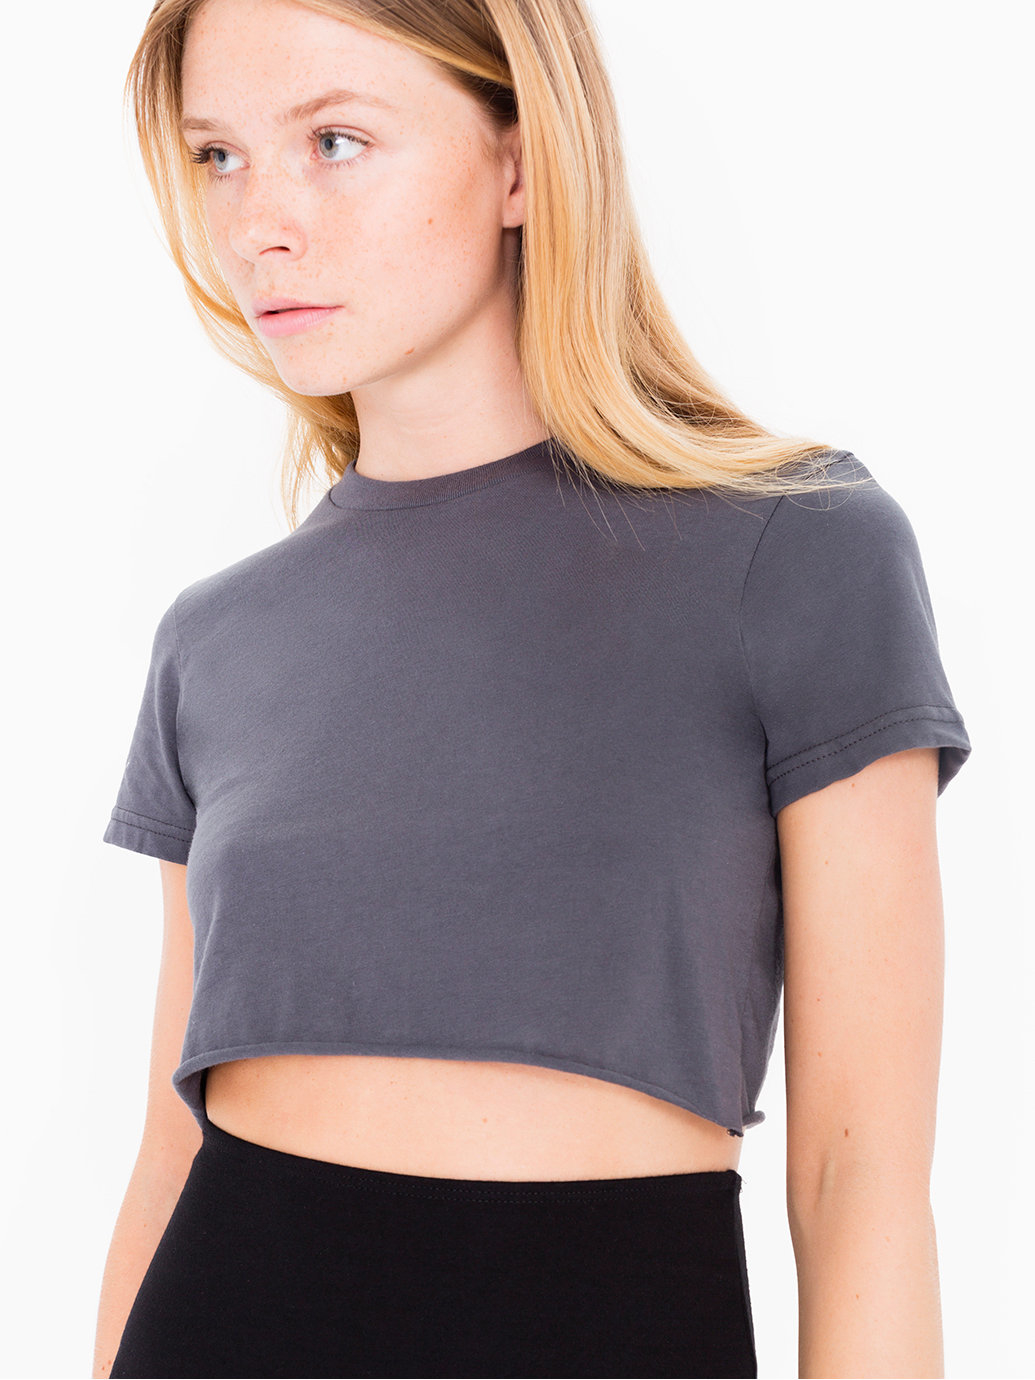 American Apparel Fine Jersey Short Sleeve Cropped T Shirt